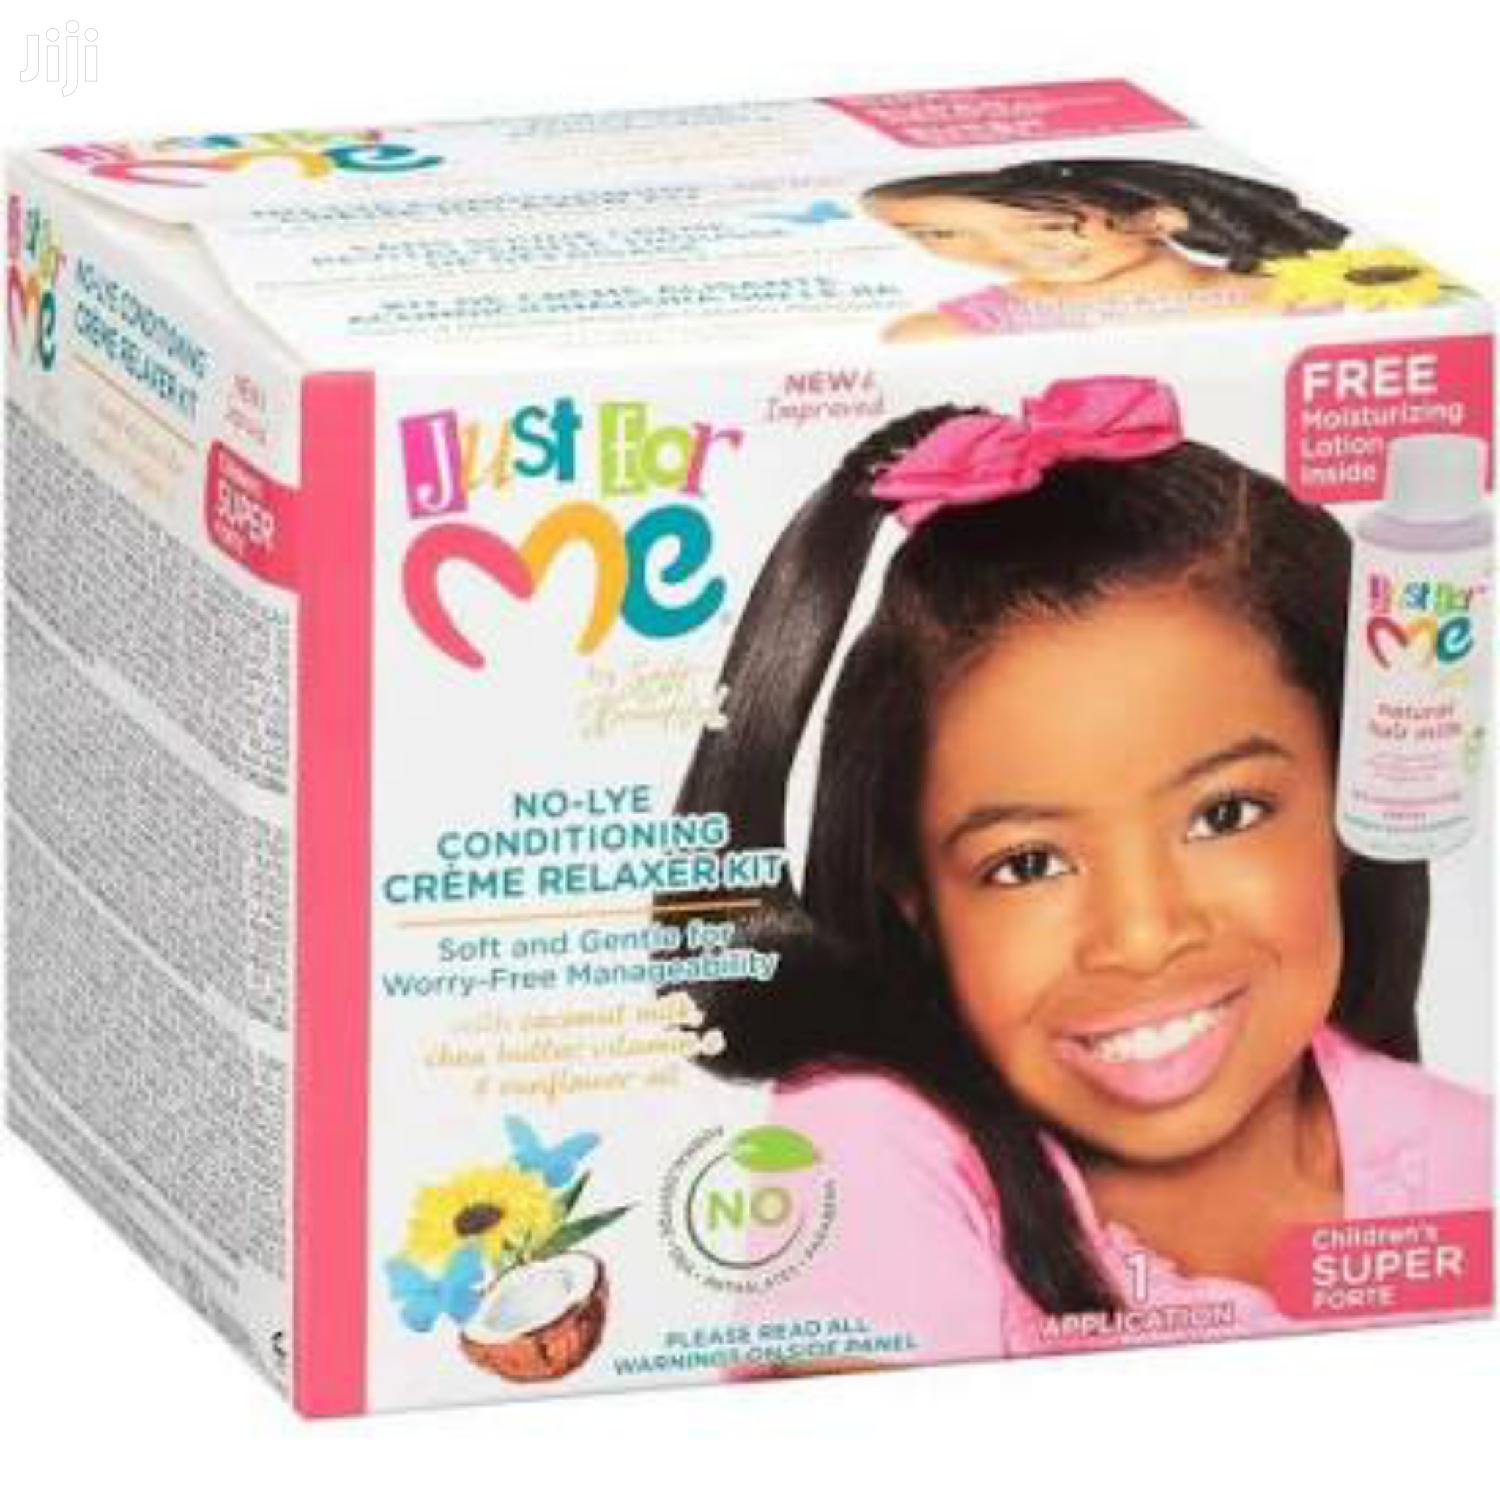 Just For Me Relaxer Kit For Kids